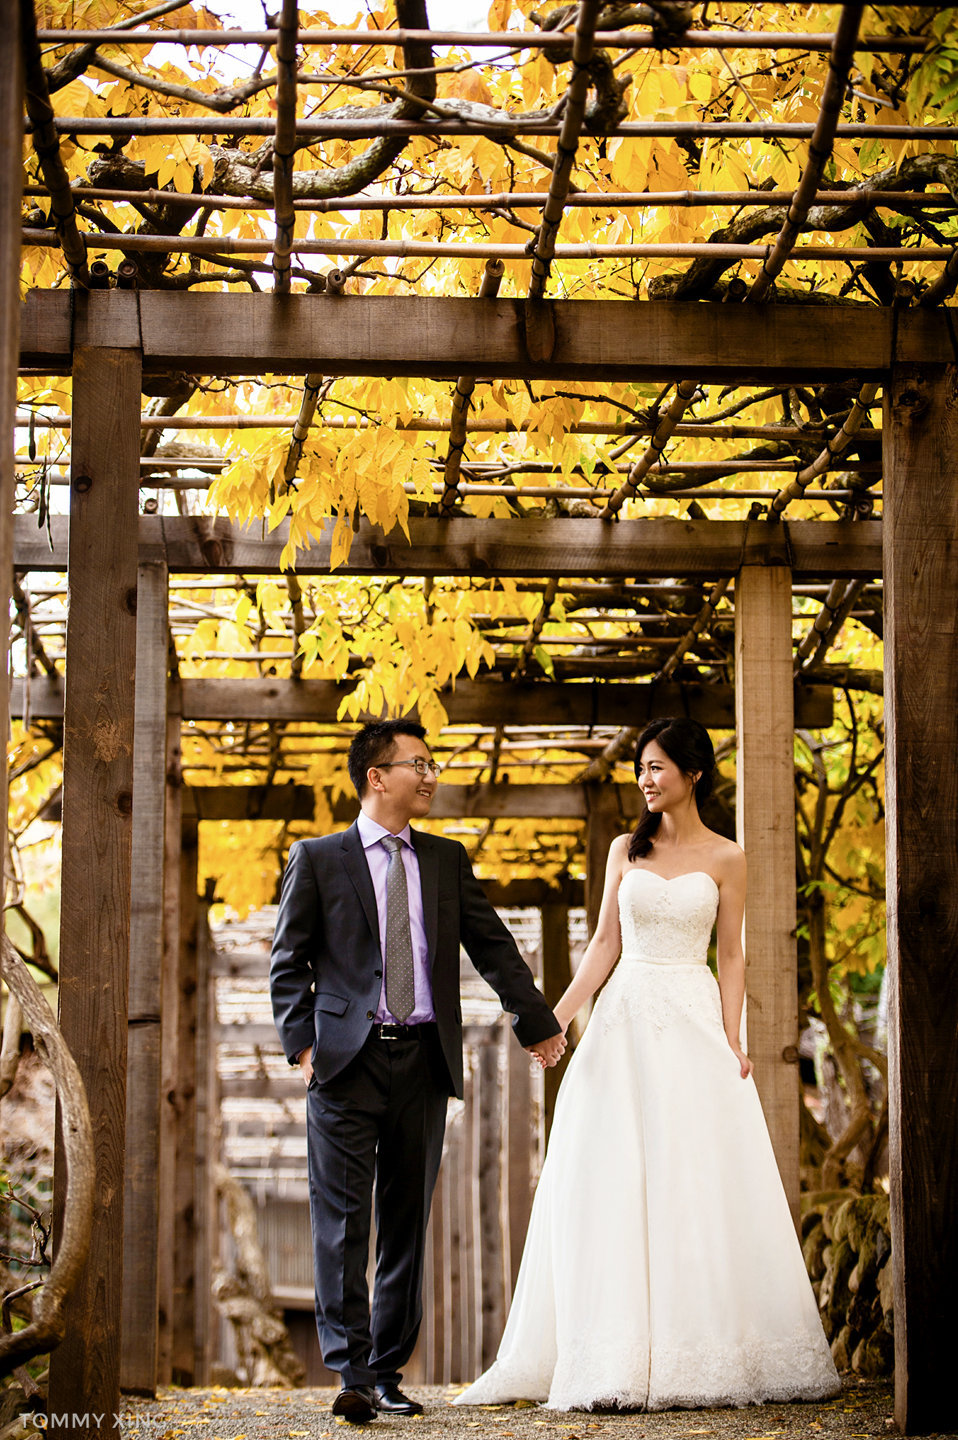 San Francisco Bay Area Chinese Pre Wedding Photographer Tommy Xing 旧金山湾区婚纱照摄影 02.jpg